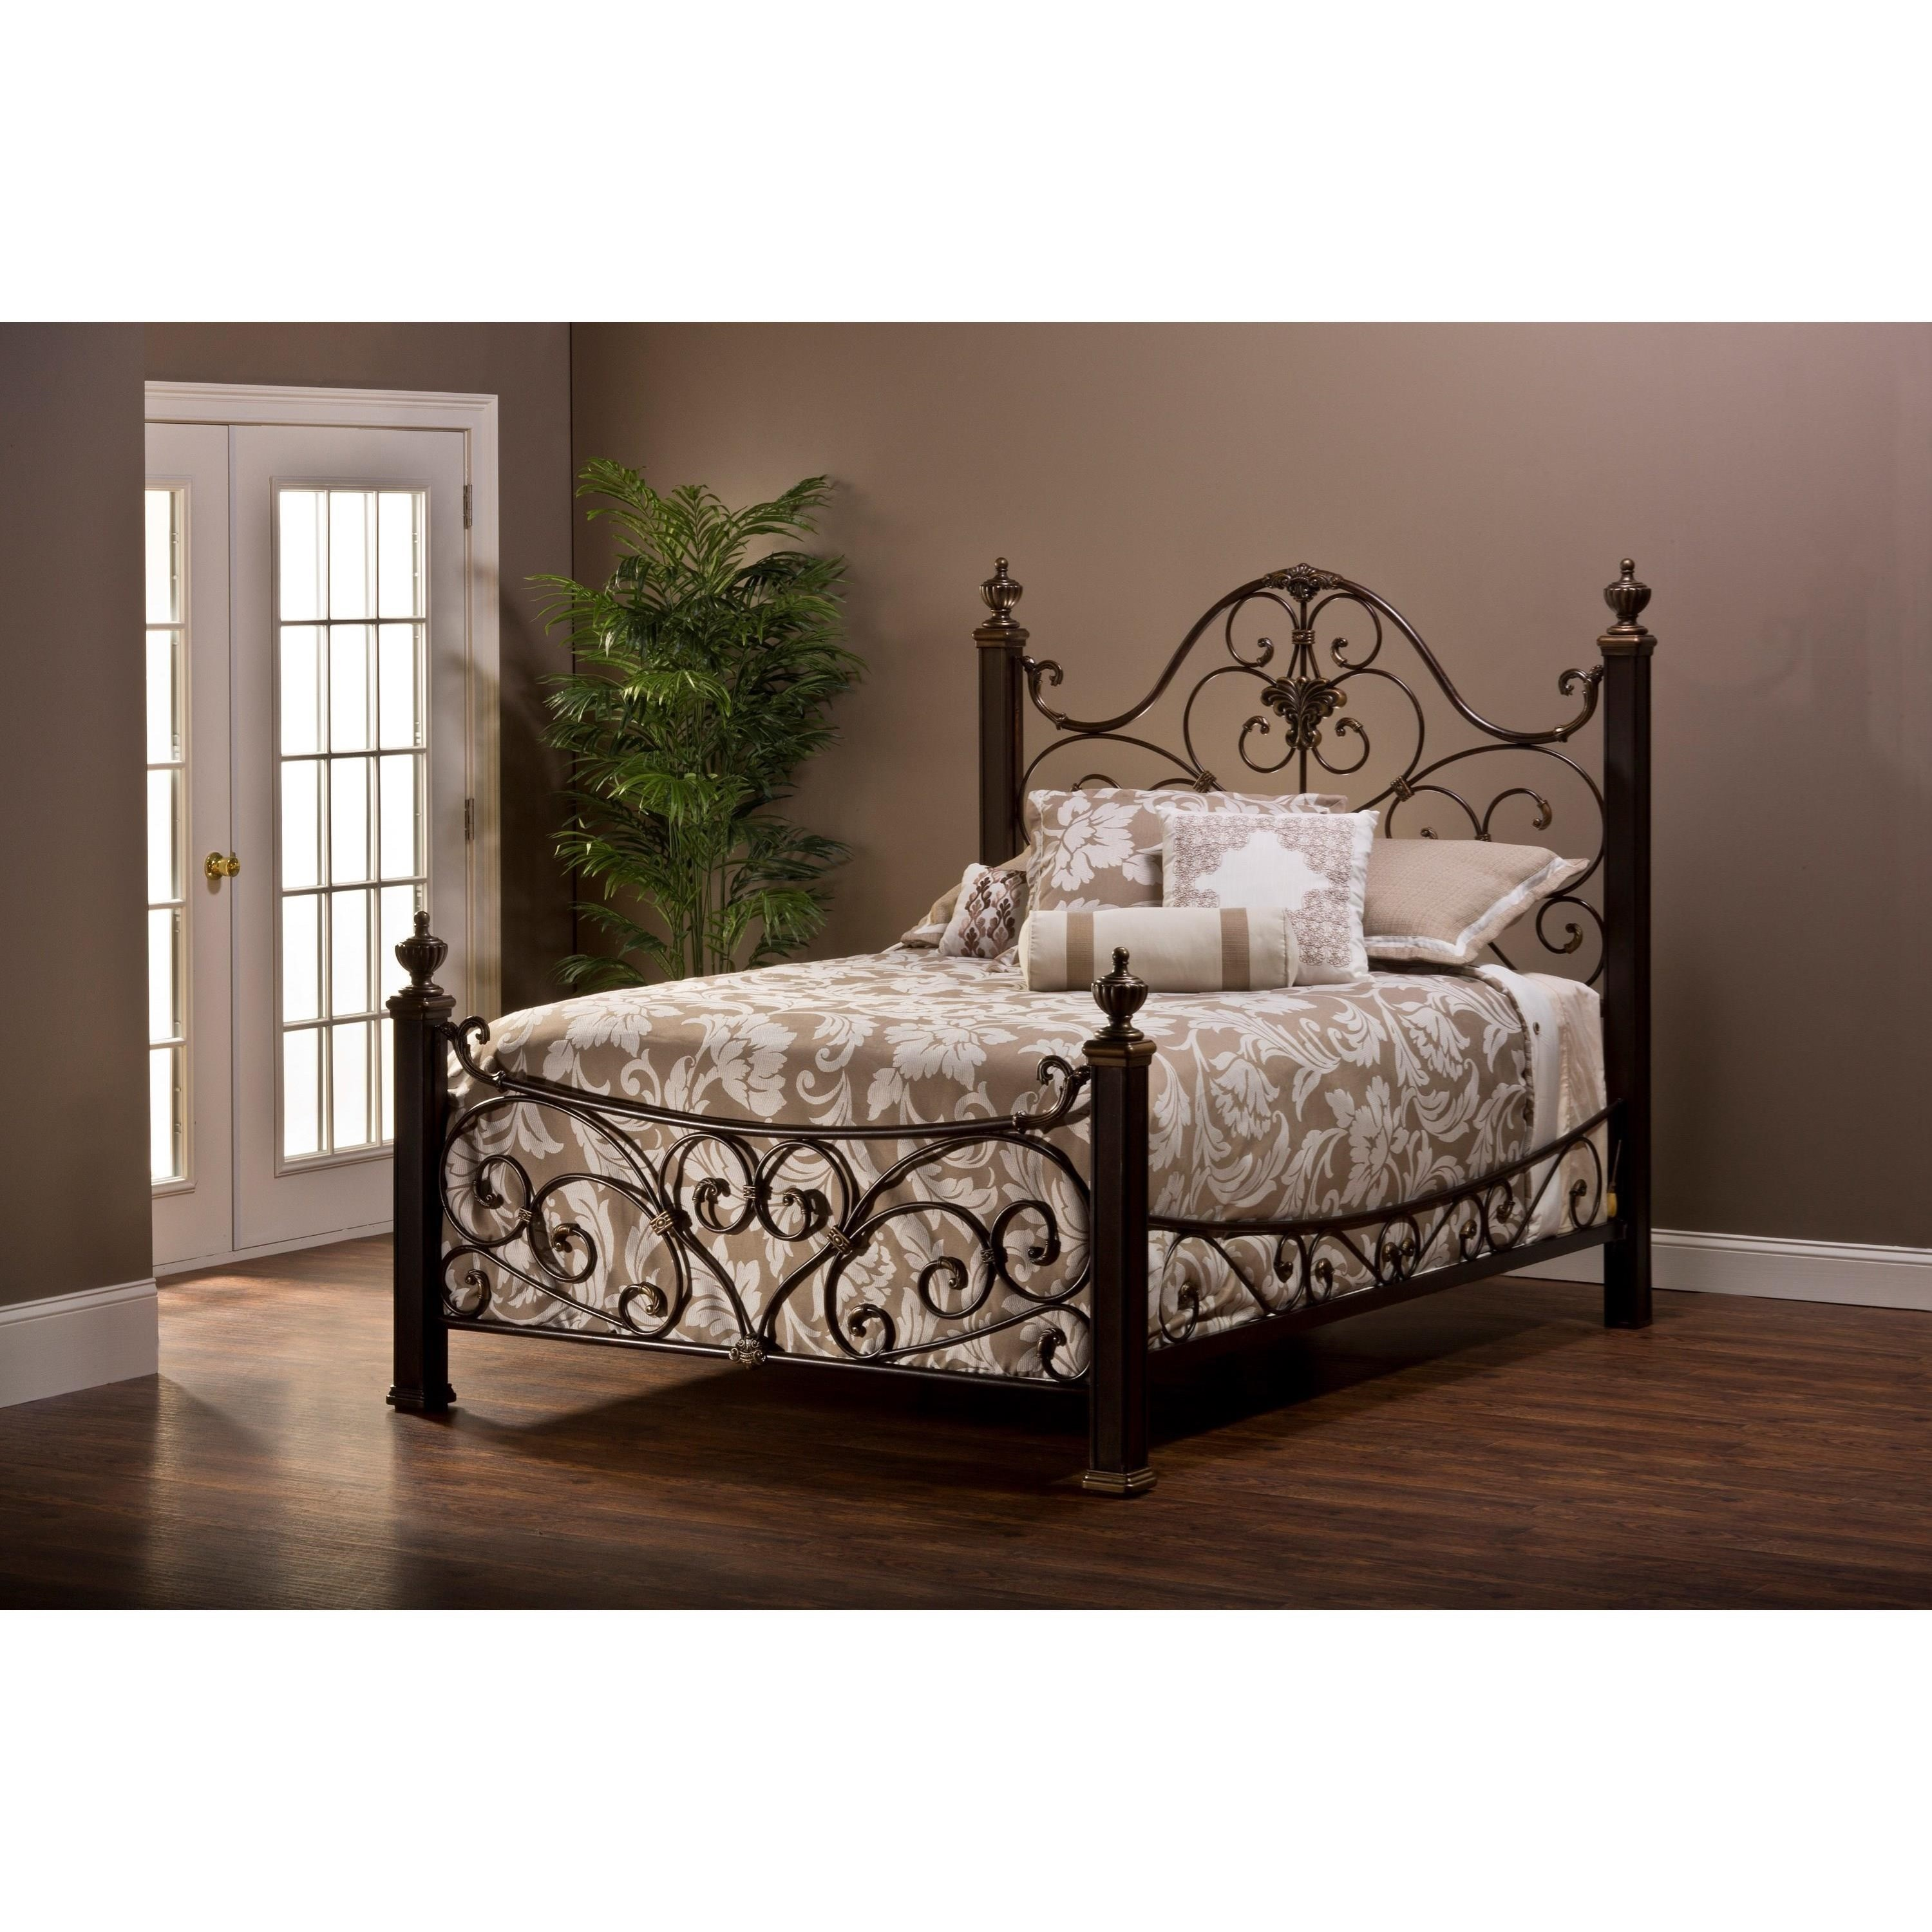 King Bed Set with Rails